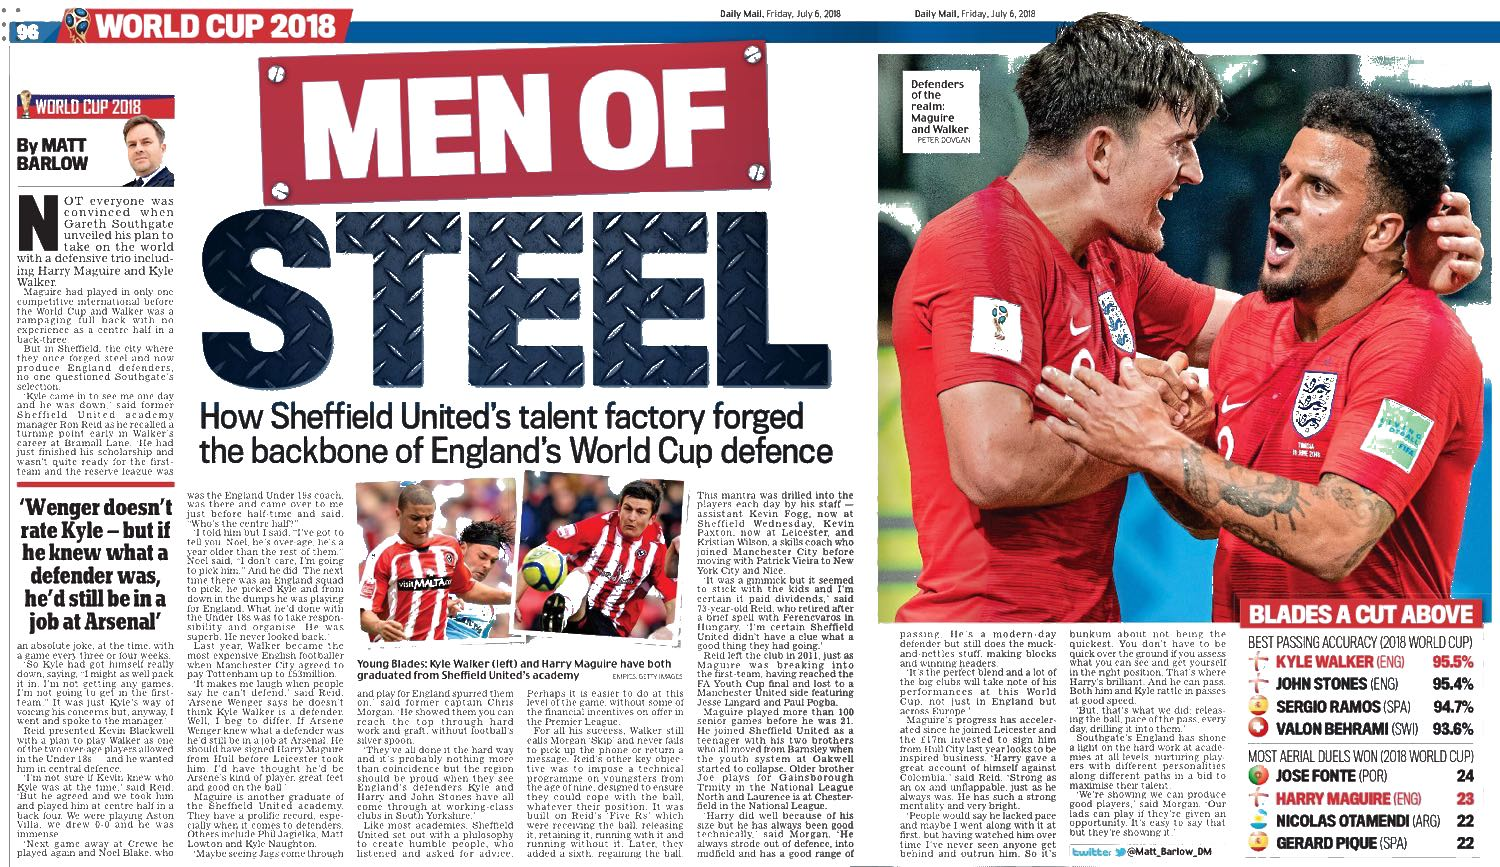 Daily Mail Men of Steel.jpgSheffield United Academy has produced England World Cup men of steel writes Matt Barlow of ex-Blades in Daily Mail